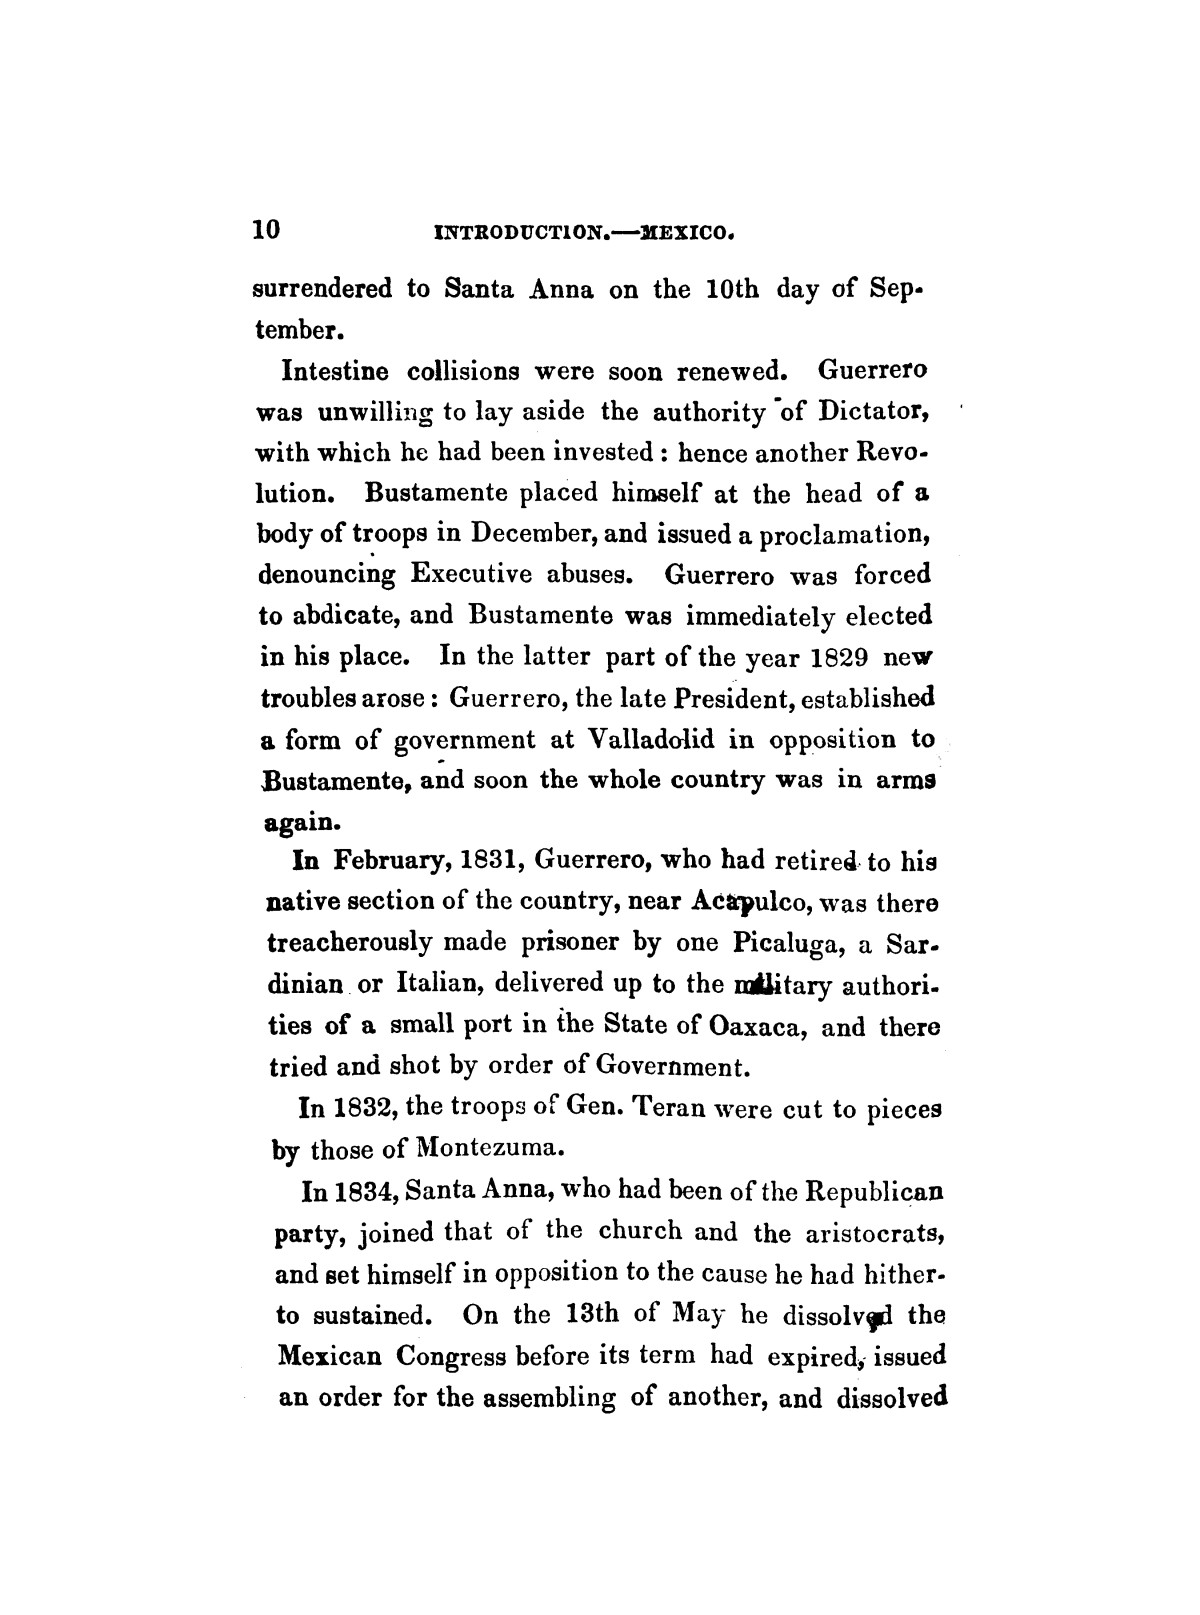 History of the revolution in Texas, particularly of the war of 1835 & '36; together with the latest geographical, topographical, and statistical accounts of the country, from the most authentic sources. Also, an appendix. By the Rev. C. Newell.                                                                                                      [Sequence #]: 22 of 227